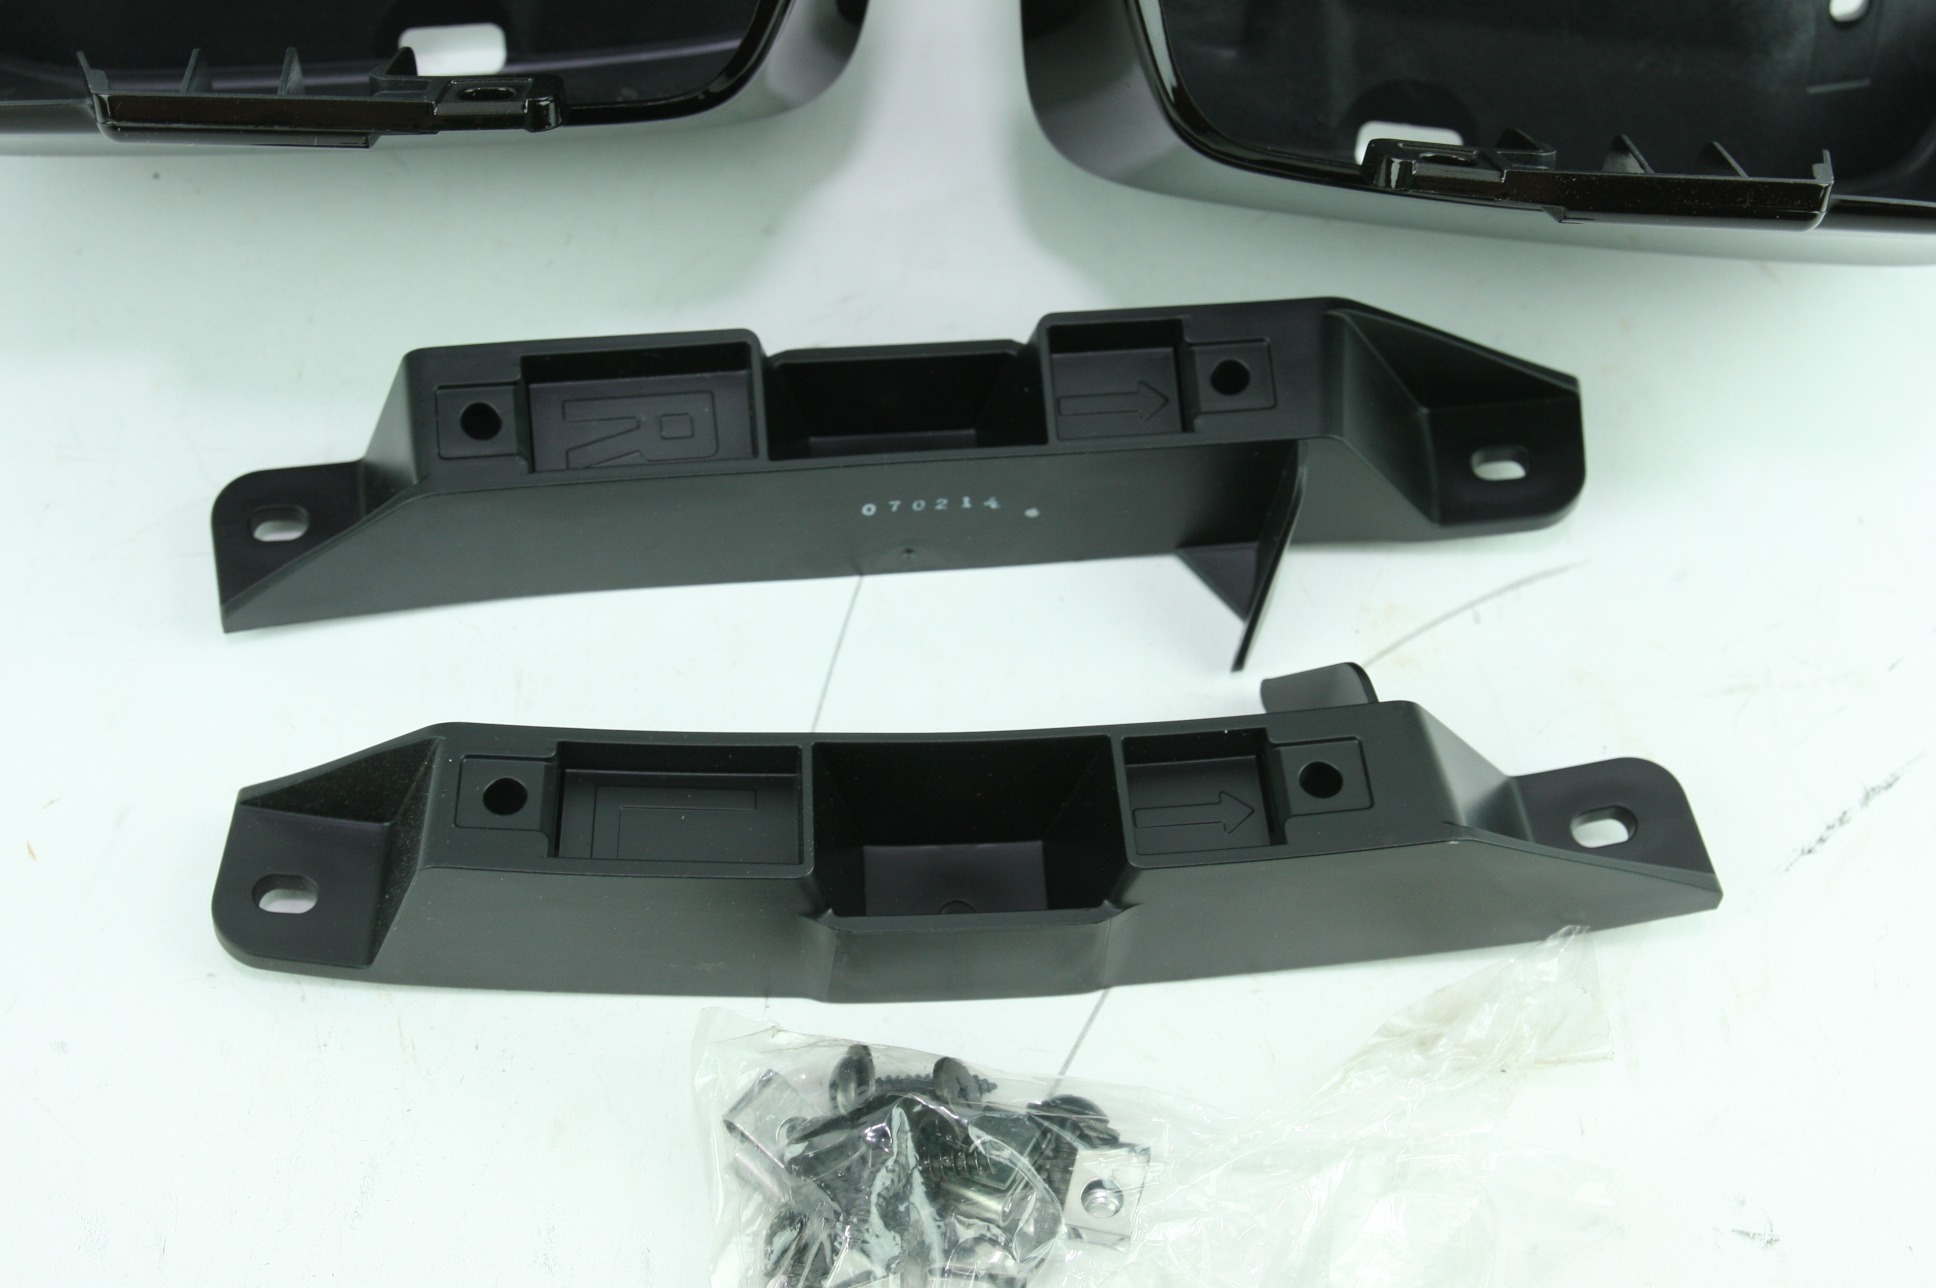 ** New Genuine OEM Honda 08P09-TZ3-260 Rear Splash Guard Set Acura TLX - image 7